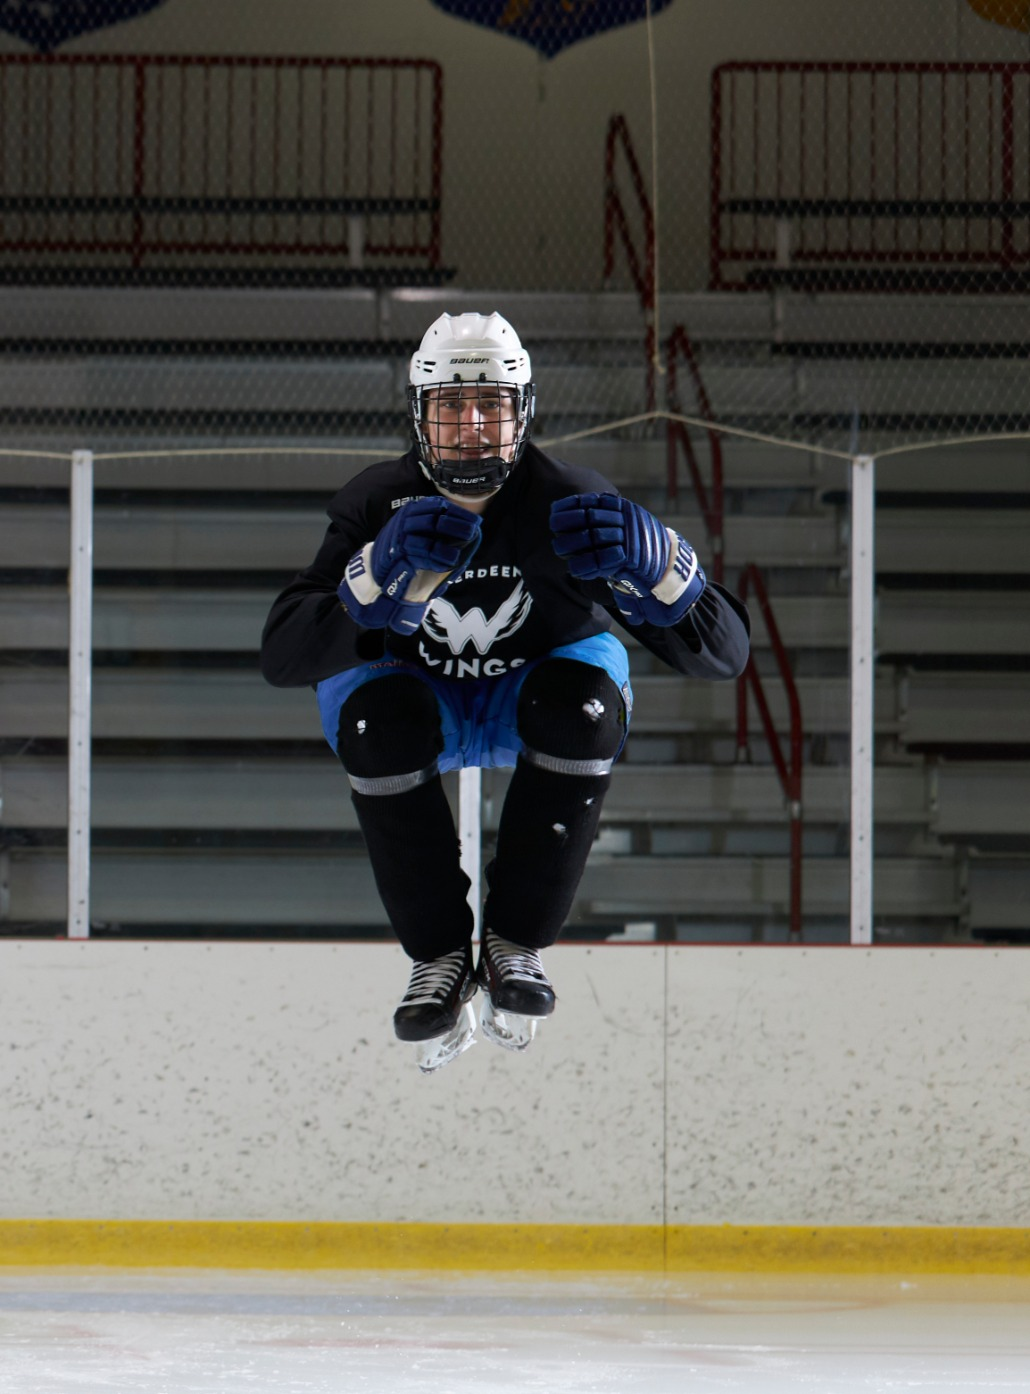 0575_06_Shot 6_190622_SwintonPowerSkate_